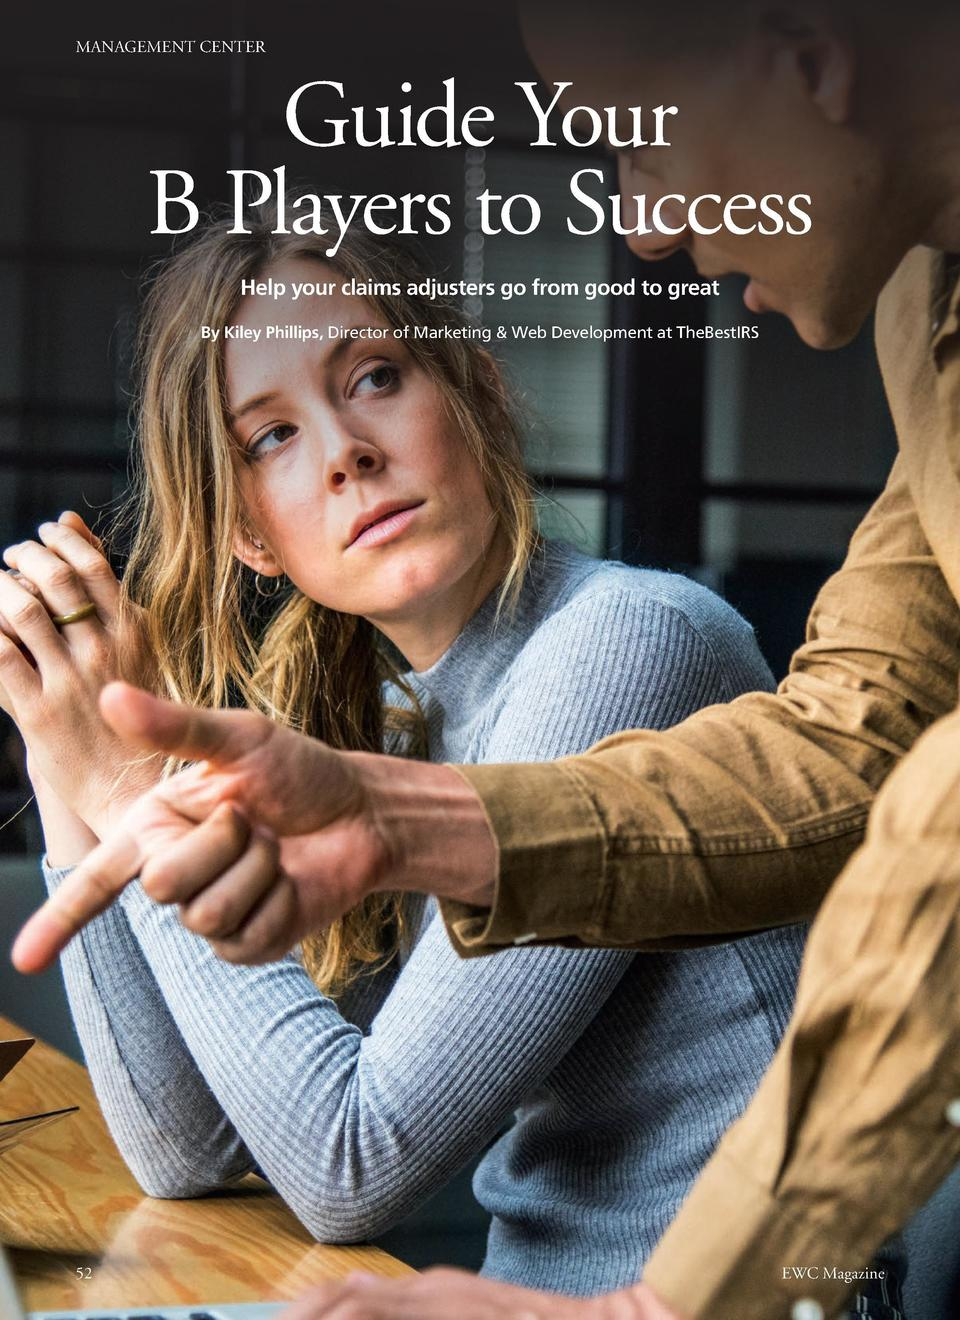 MANAGEMENT CENTER  MANAGEMENT CENTER  Guide Your B Players to Success Help your claims adjusters go from good to great By ...